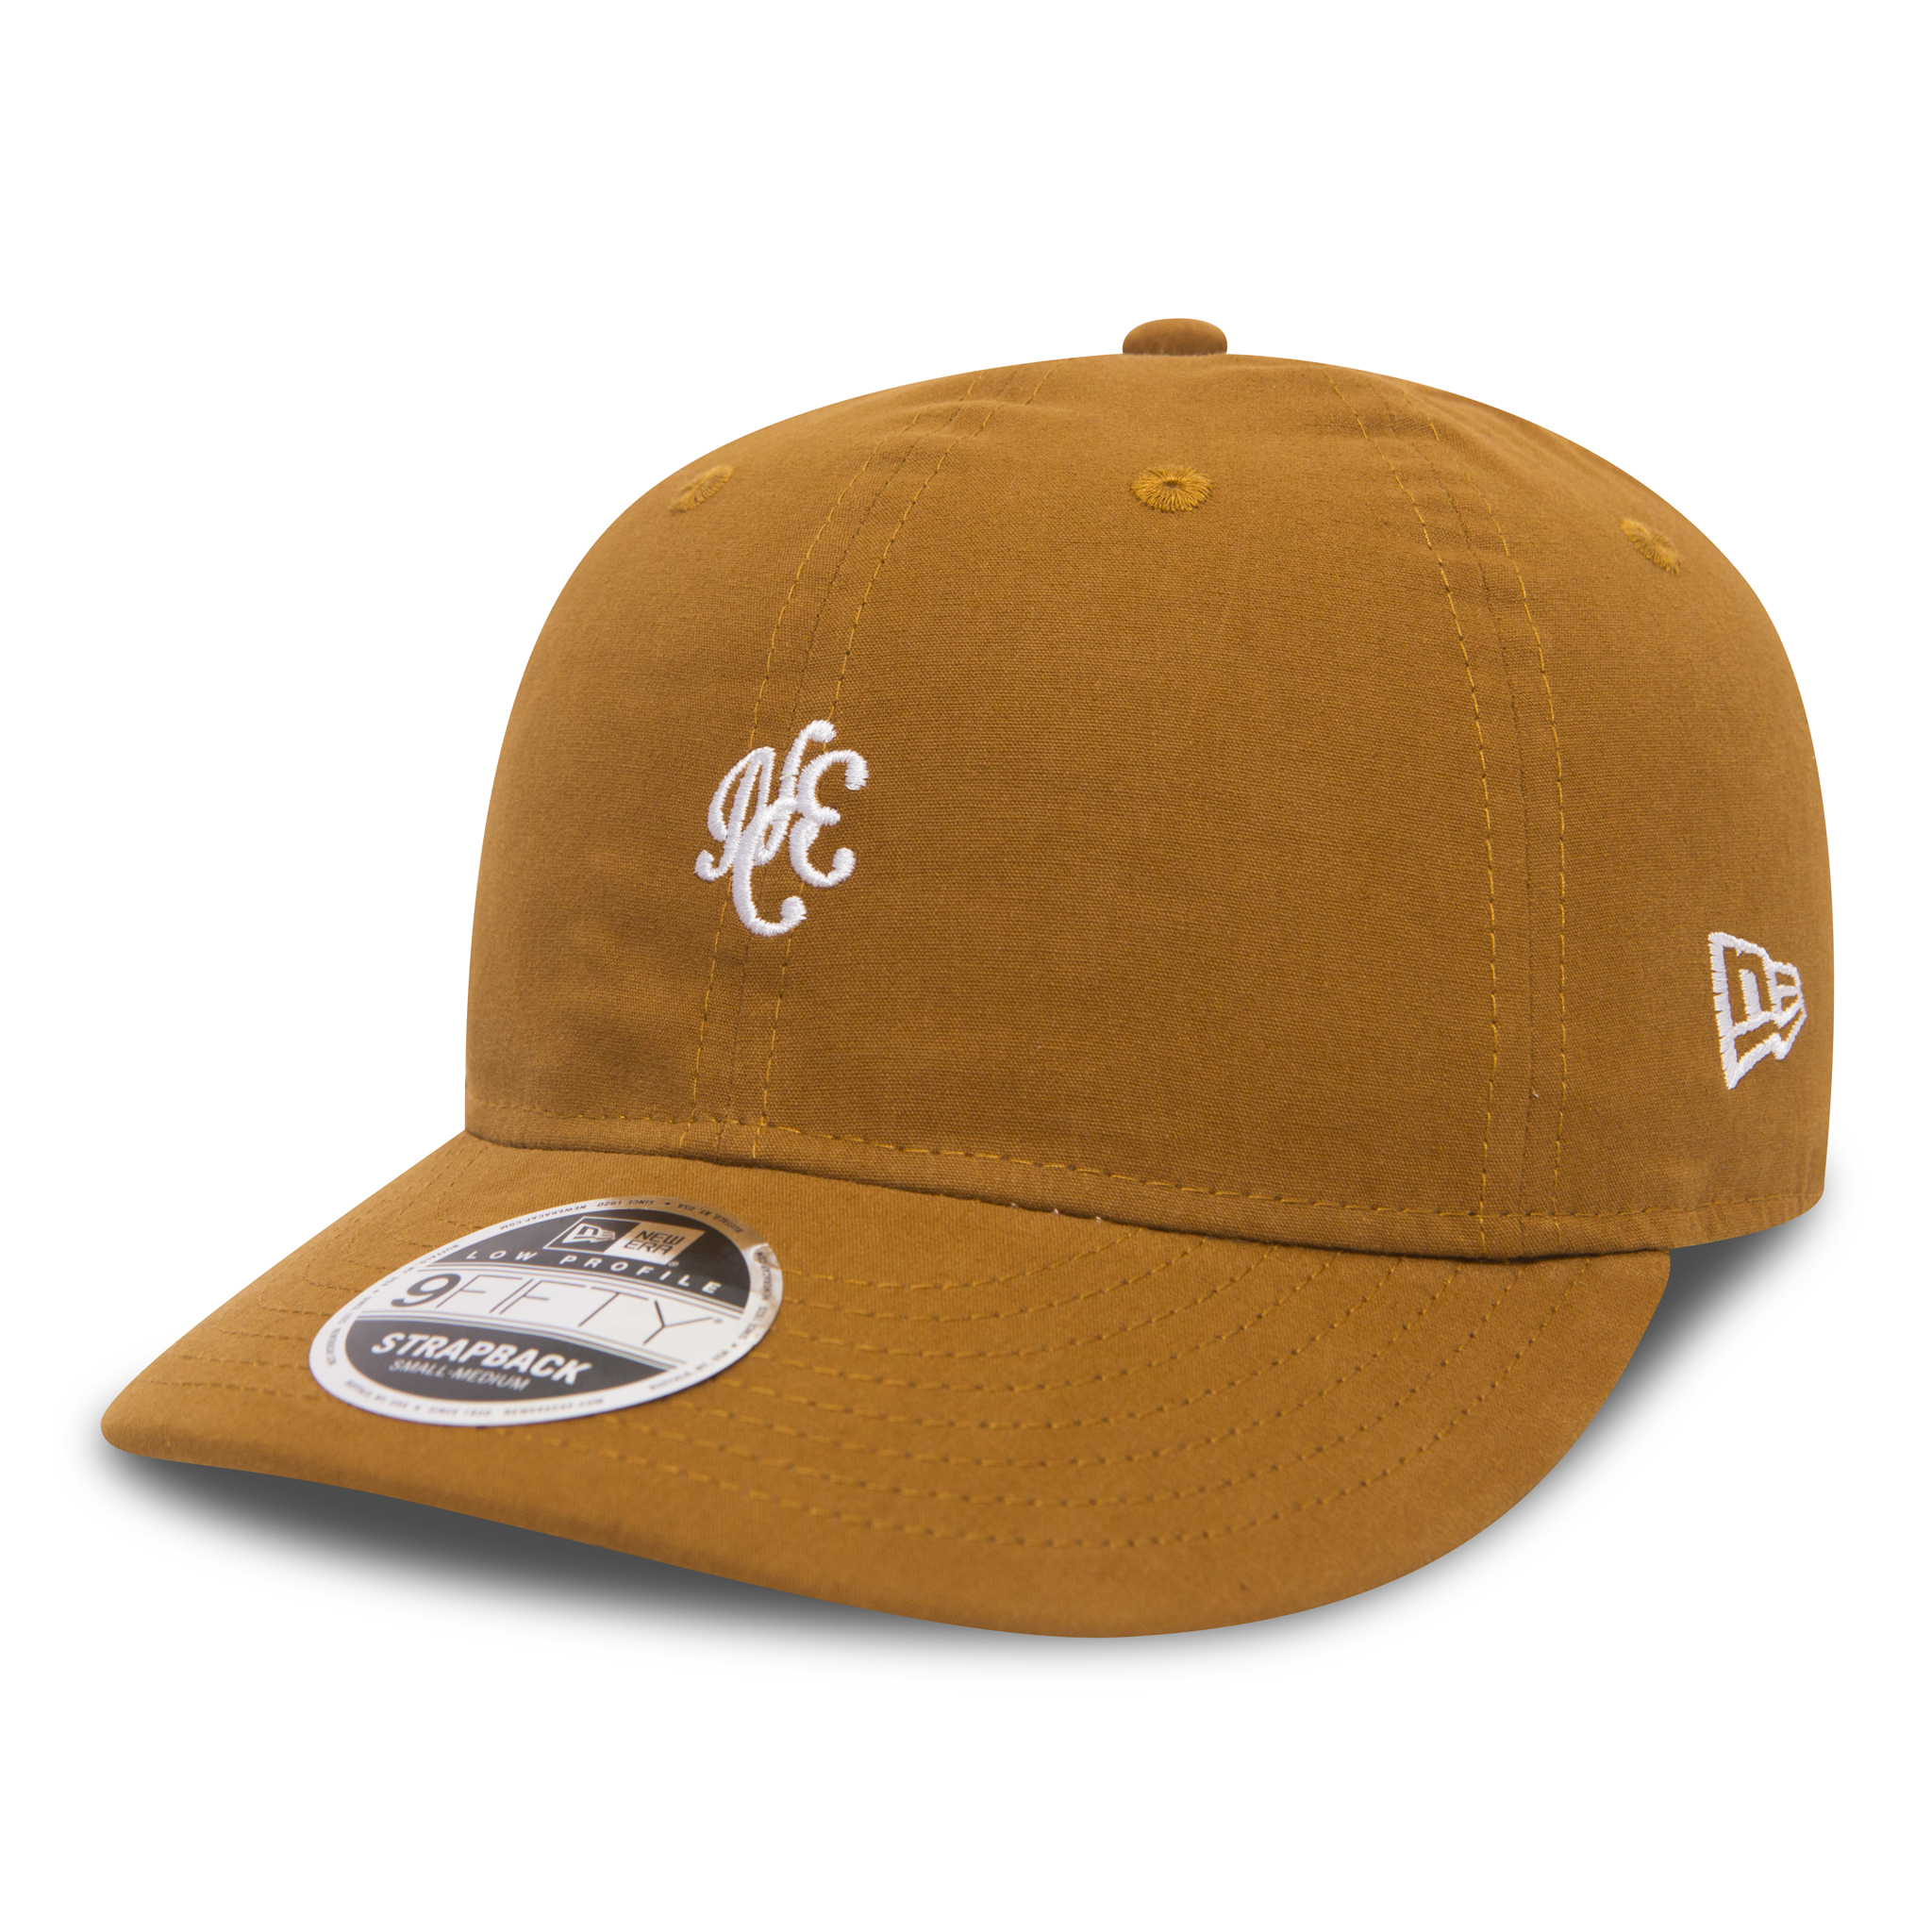 New Era Lightweight Low Profile 9FIFTY Strapback  55cfcfb1bcd